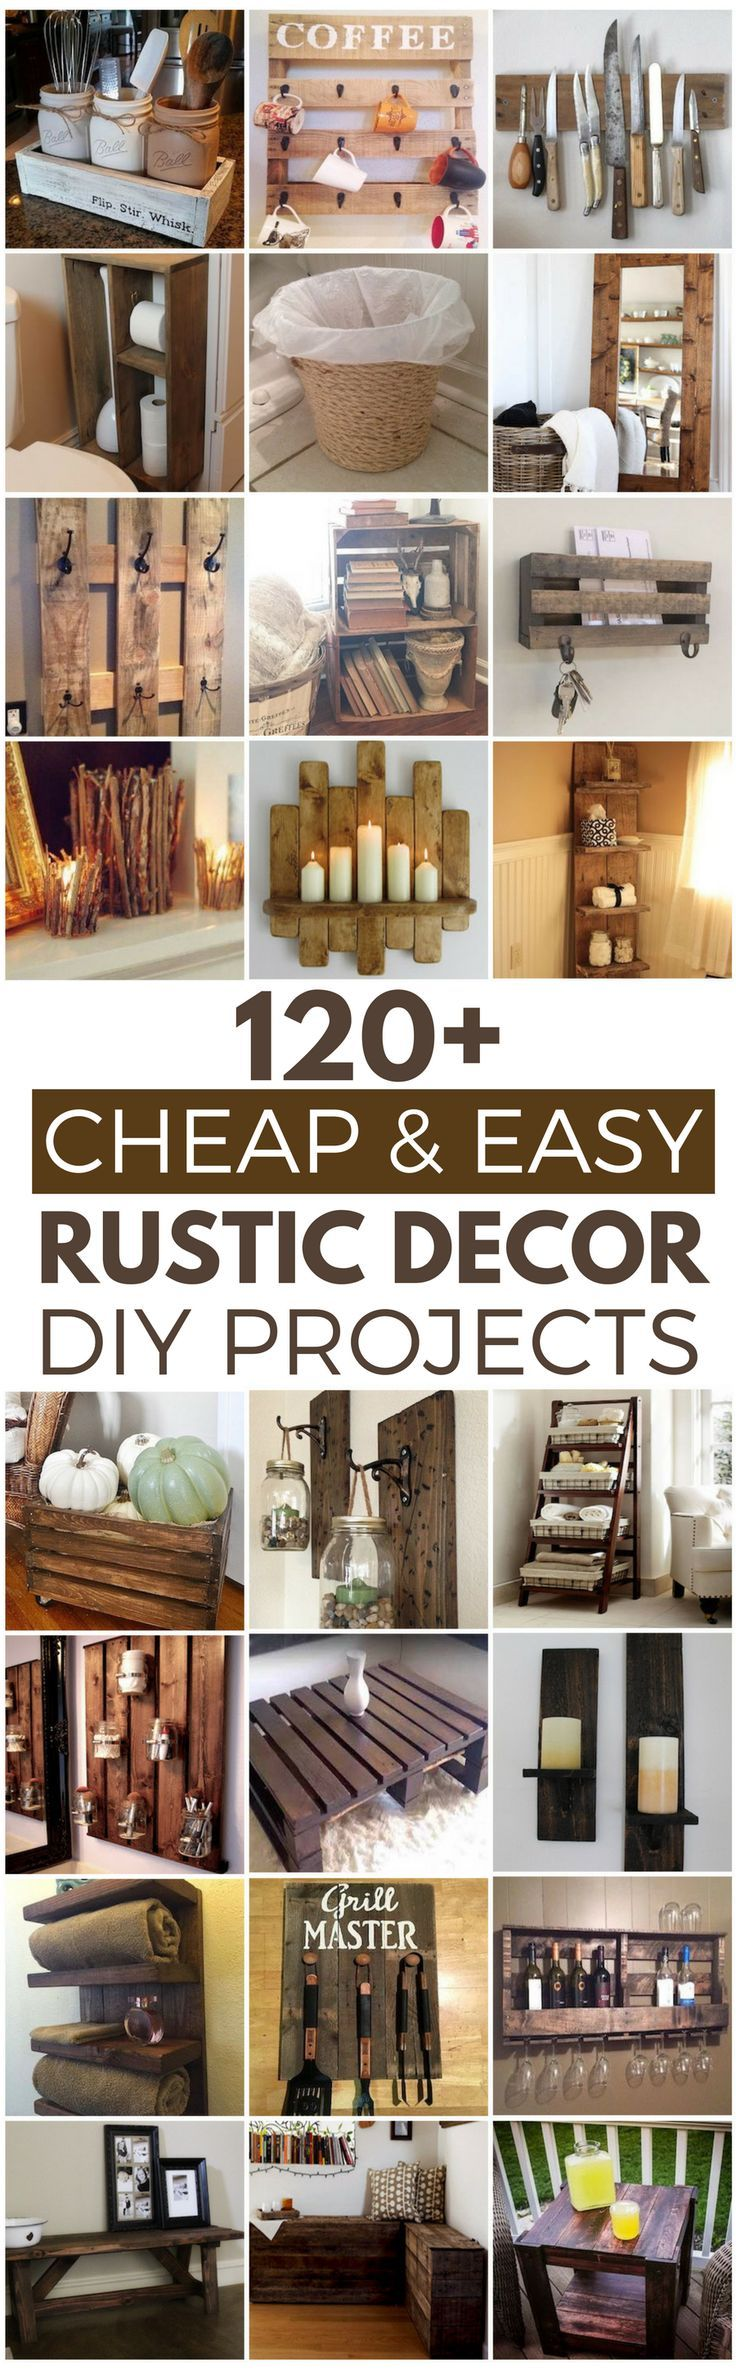 120 Cheap And Easy Rustic Diy Home Decor Ideas Projects